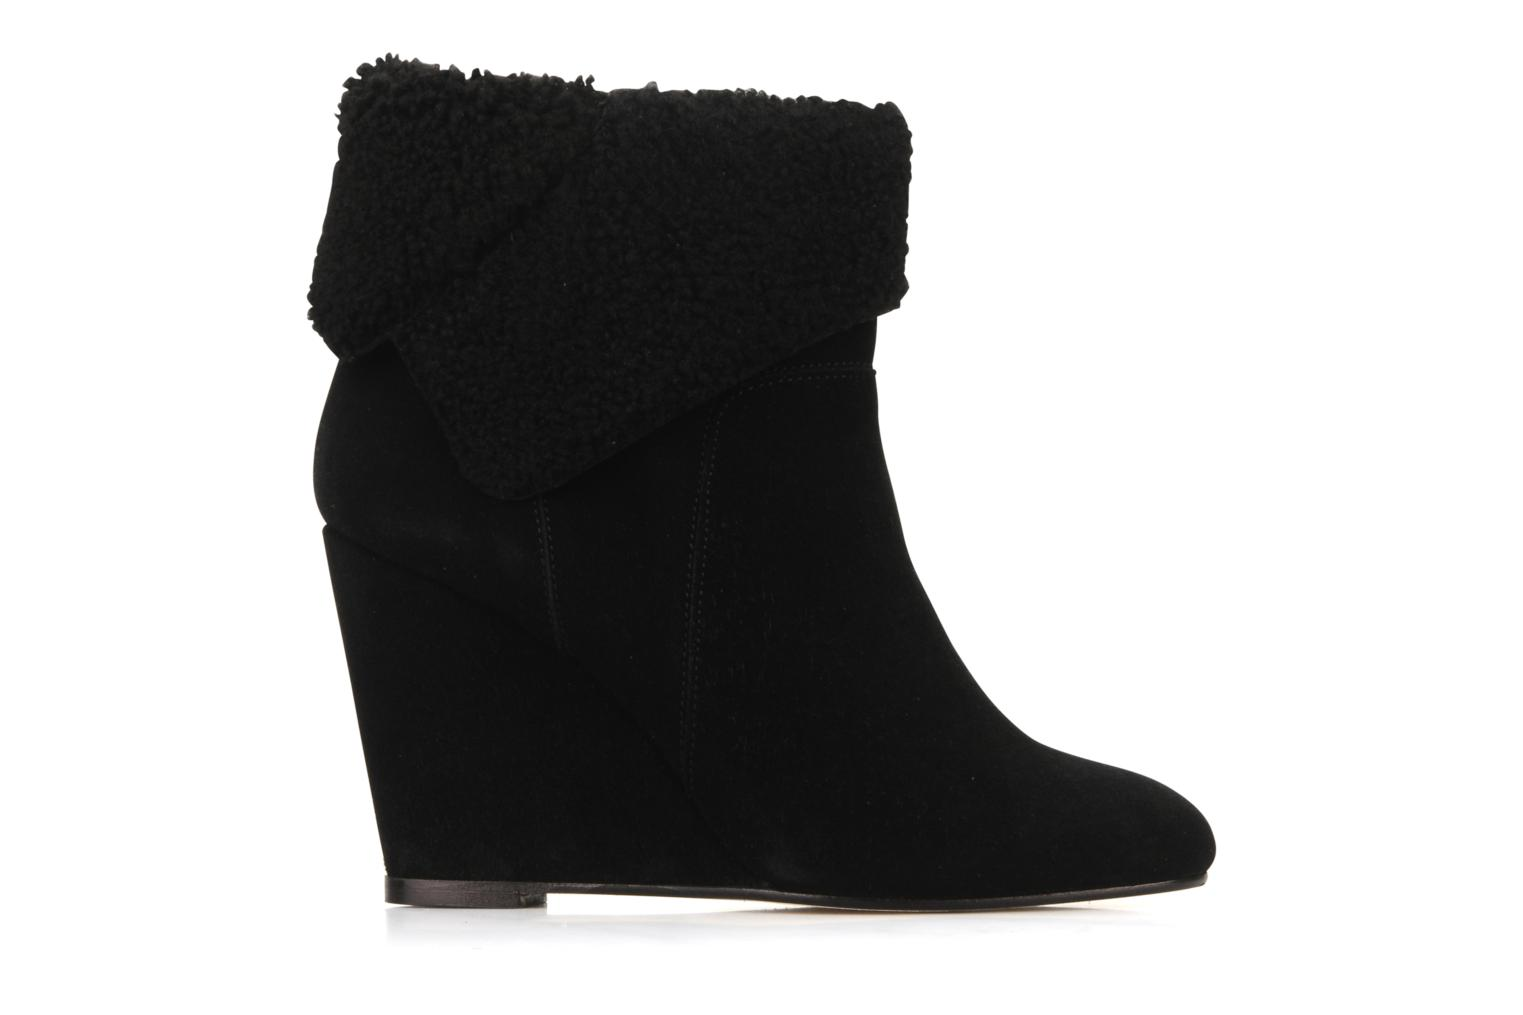 Wedge booty origami sherling Noir